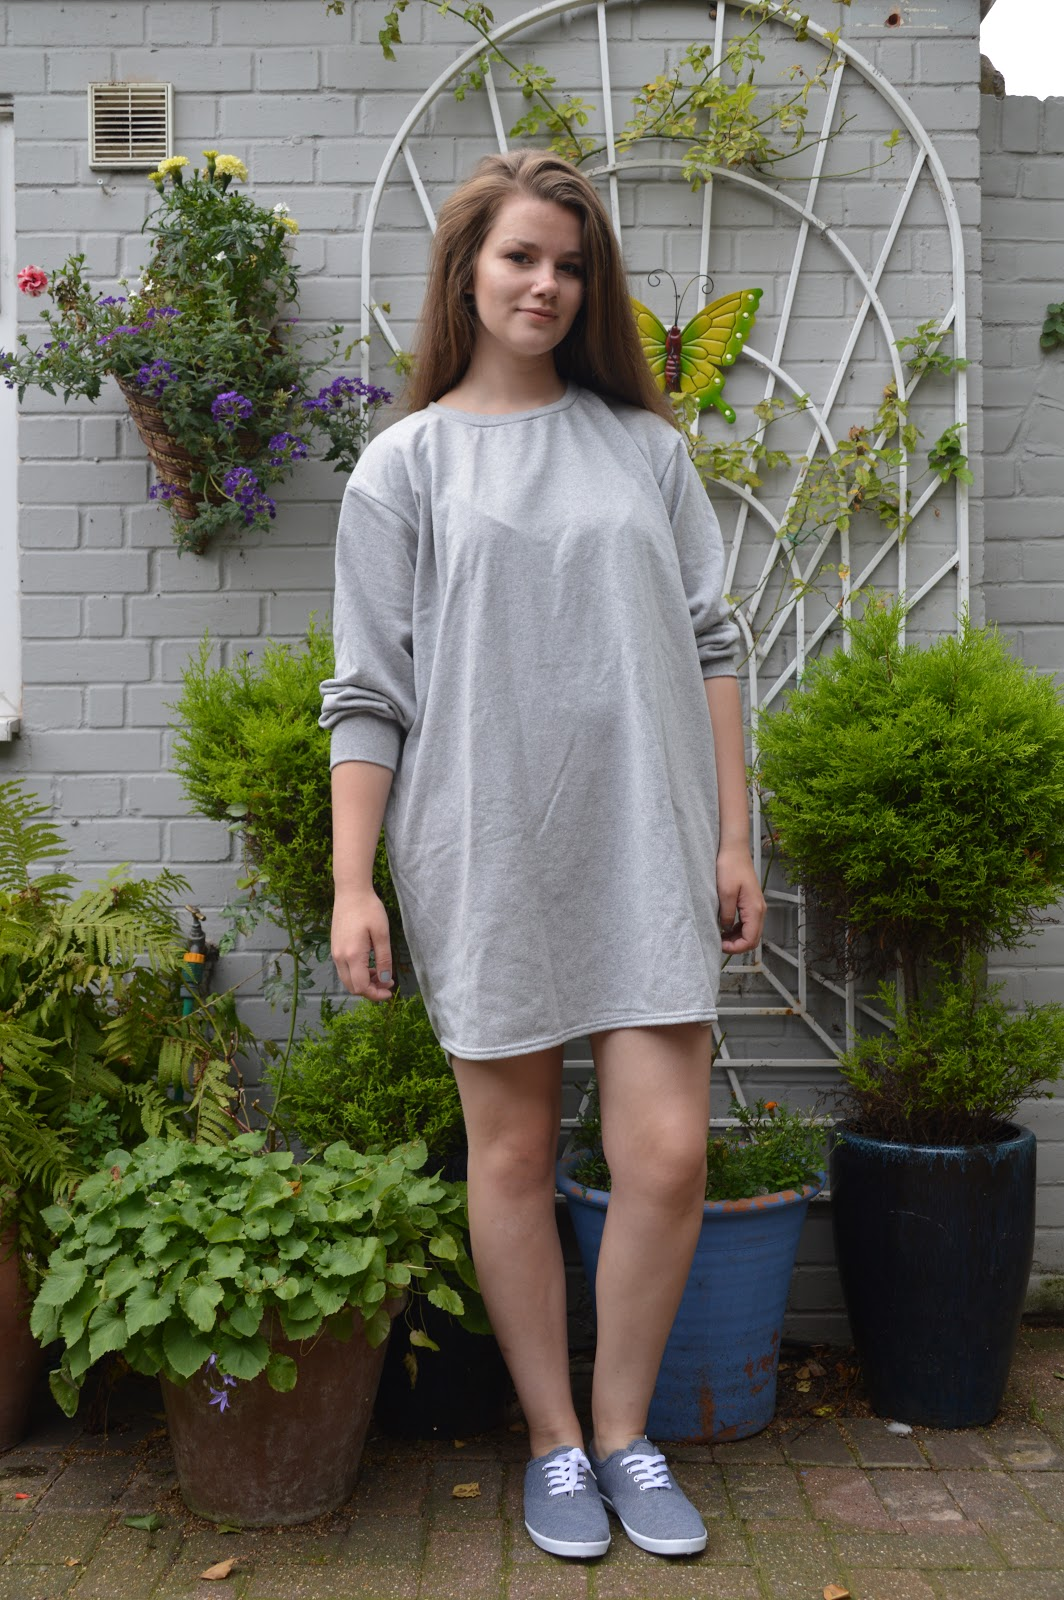 cd2447d39f This looks like a jumper right  Well it is! The Sianna Grey Oversized  Sweater Dress is exactly what you need in your wardrobe throughout every  season.